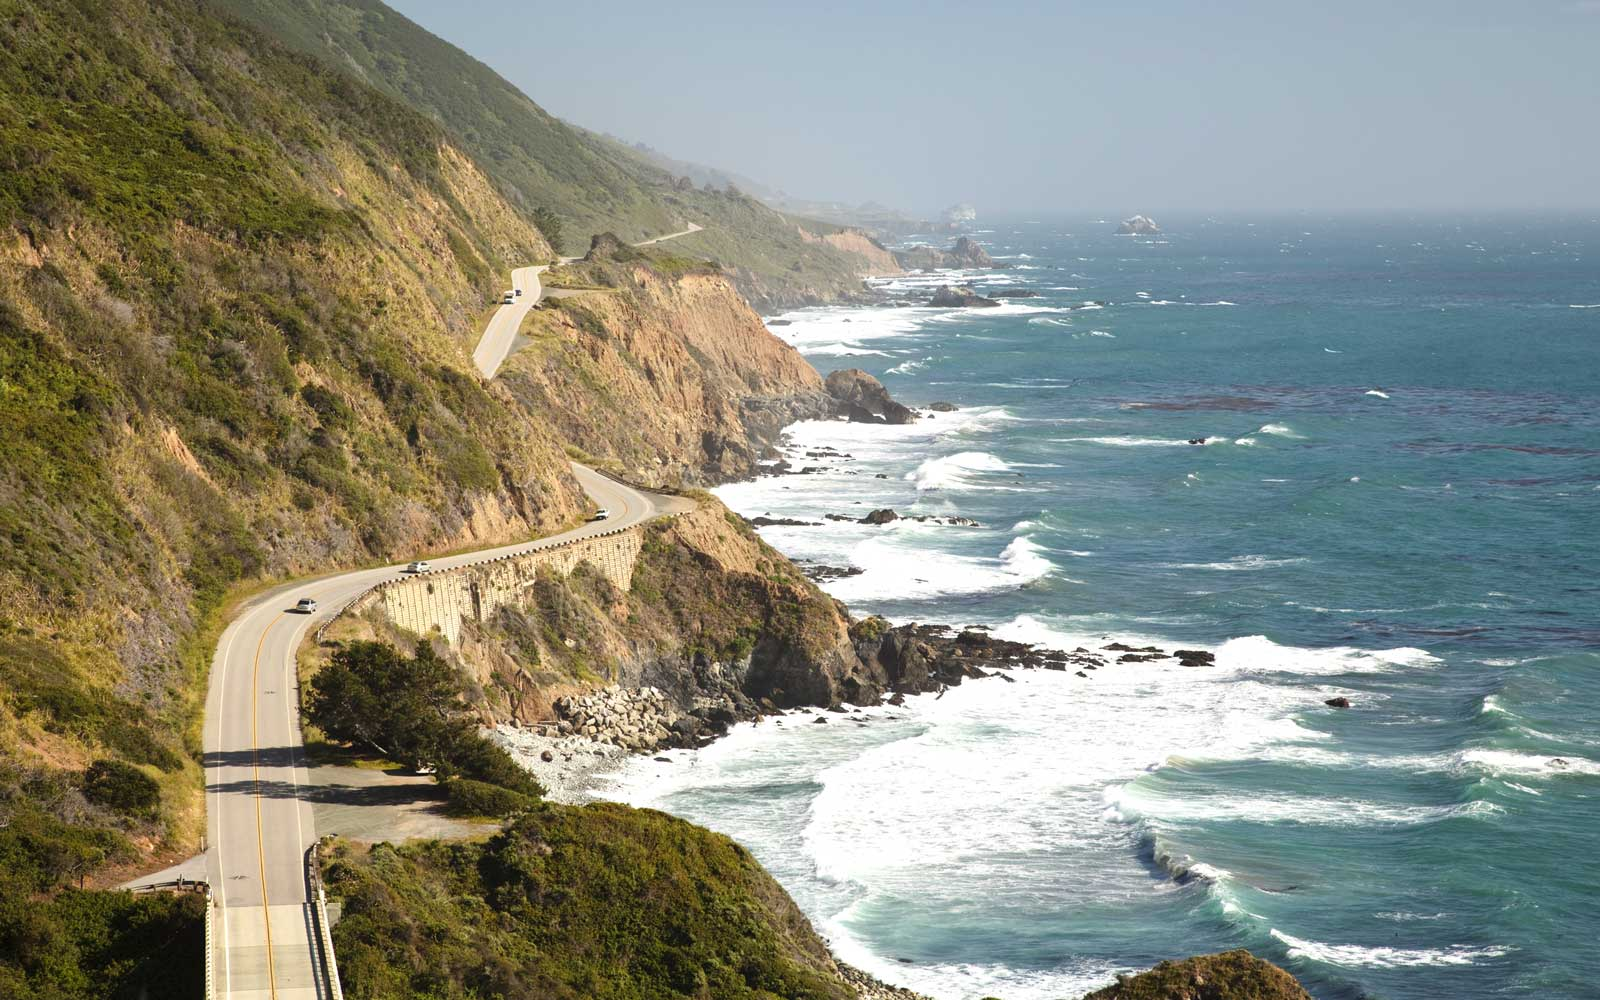 Woman Survived for 7 Days Stranded on a Beach After Driving Off 200-foot Cliff in Big Sur